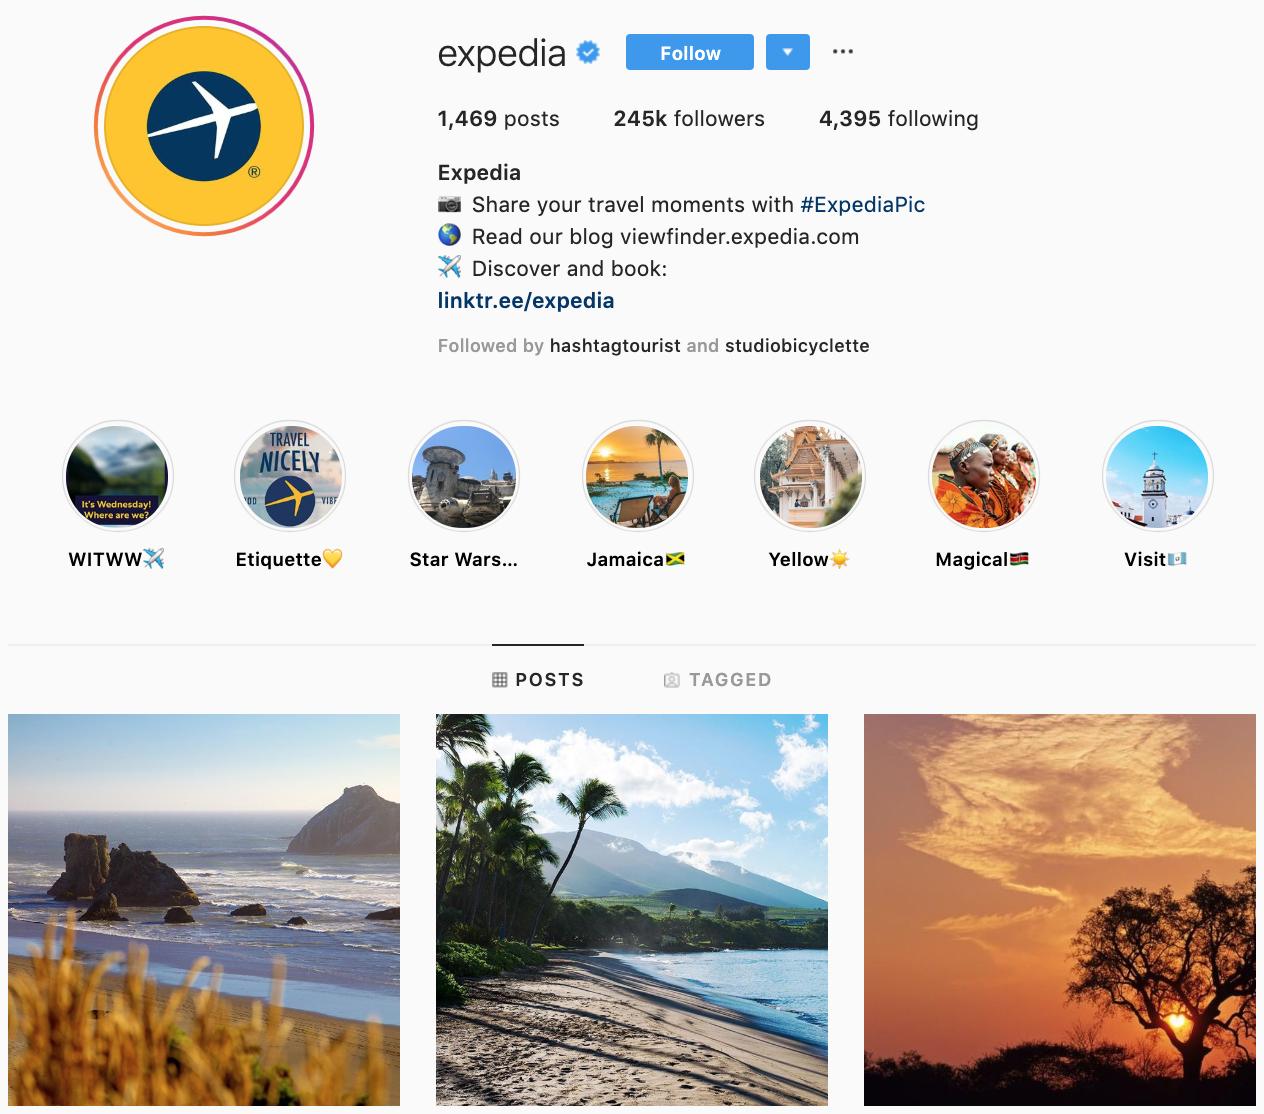 Expedia on Instagram - best brands to follow